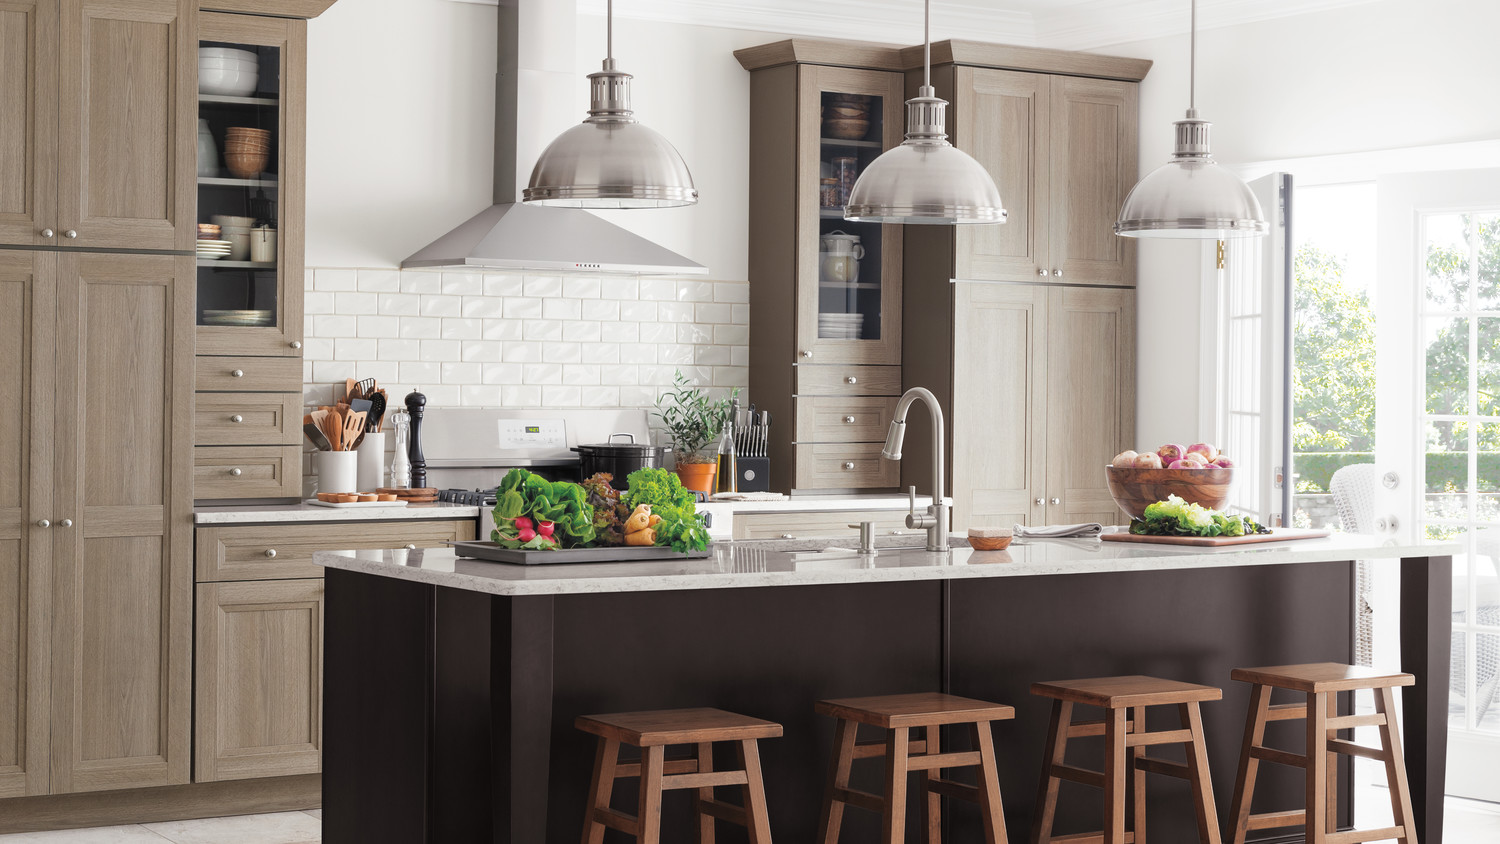 Exceptionnel Video: Martha Stewart Shares Her Kitchen Design Inspiration | Martha Stewart